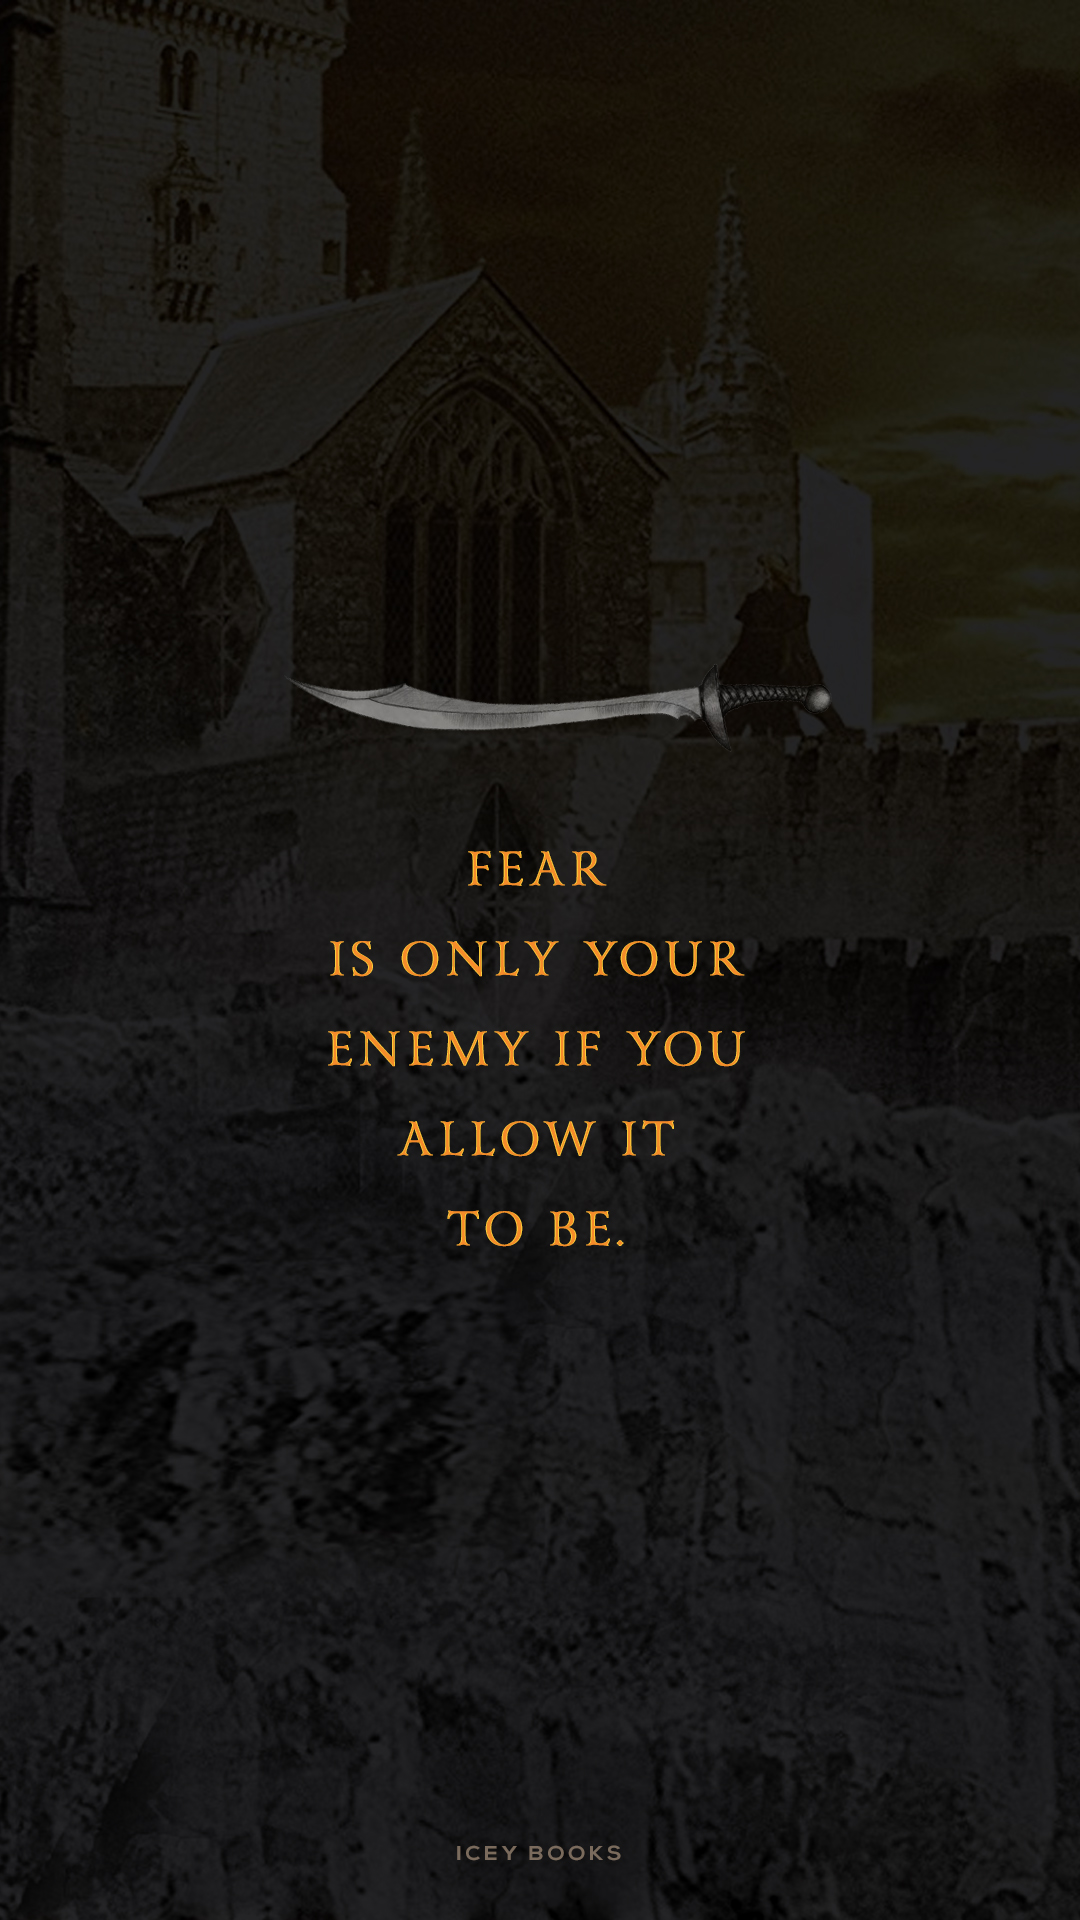 Lord Of The Rings Wallpaper Quotes Quote Candy 29 Download A Wallpaper For An Ember In